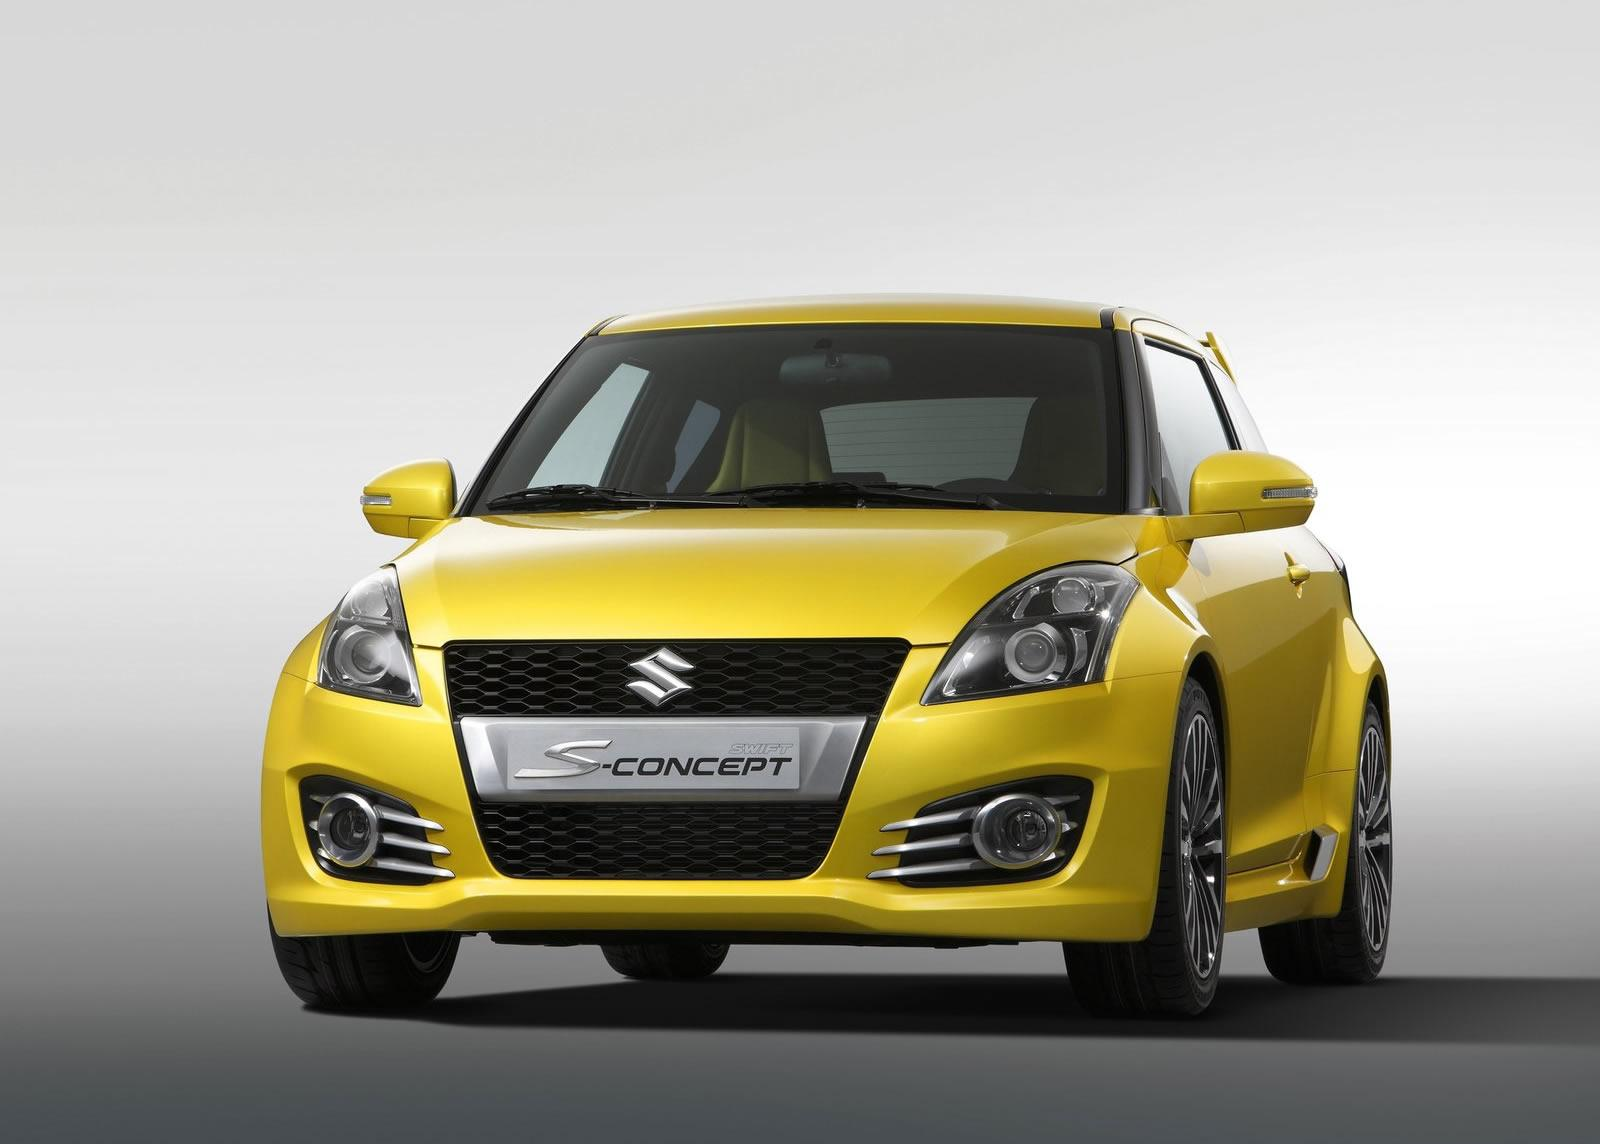 2012 Suzuki Swift Sport 1 Suzuki Swift Sport looks ready to take the roads early 2012!